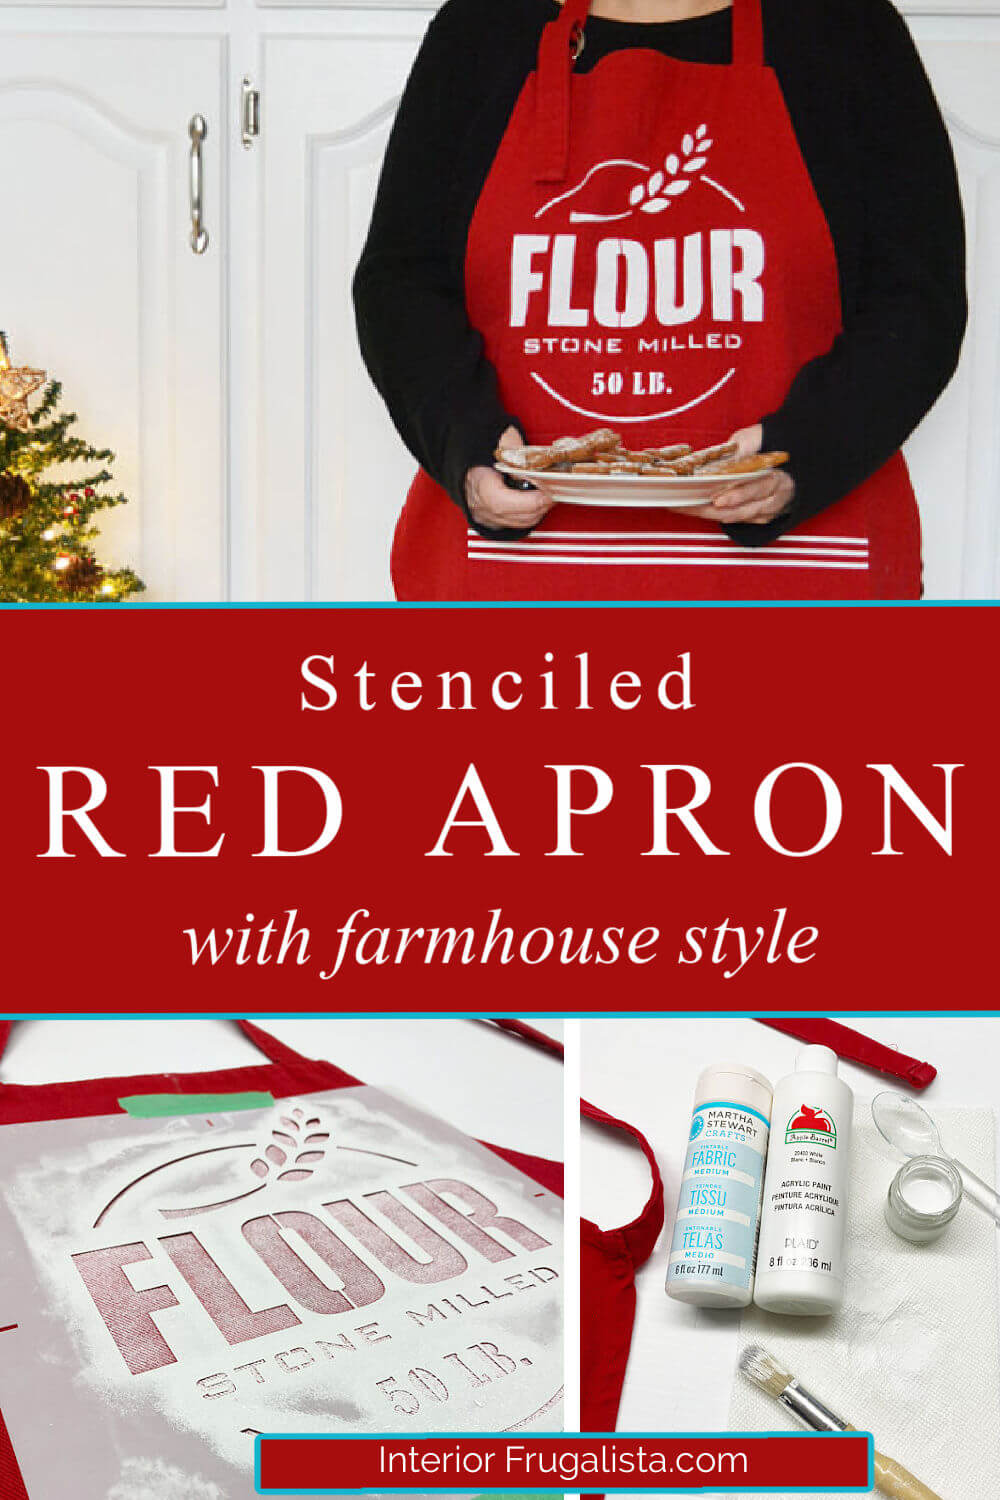 It's easy to stencil on fabric and glass with this easy to follow tutorial. Demonstrating how using the same Flour Stone Milled and Grain Sack Stripe stencils with farmhouse style on a red apron and vintage sash window glass. #stenciledaprons #farmhouseapron #redapron #stenciledglass #stenciledwindow